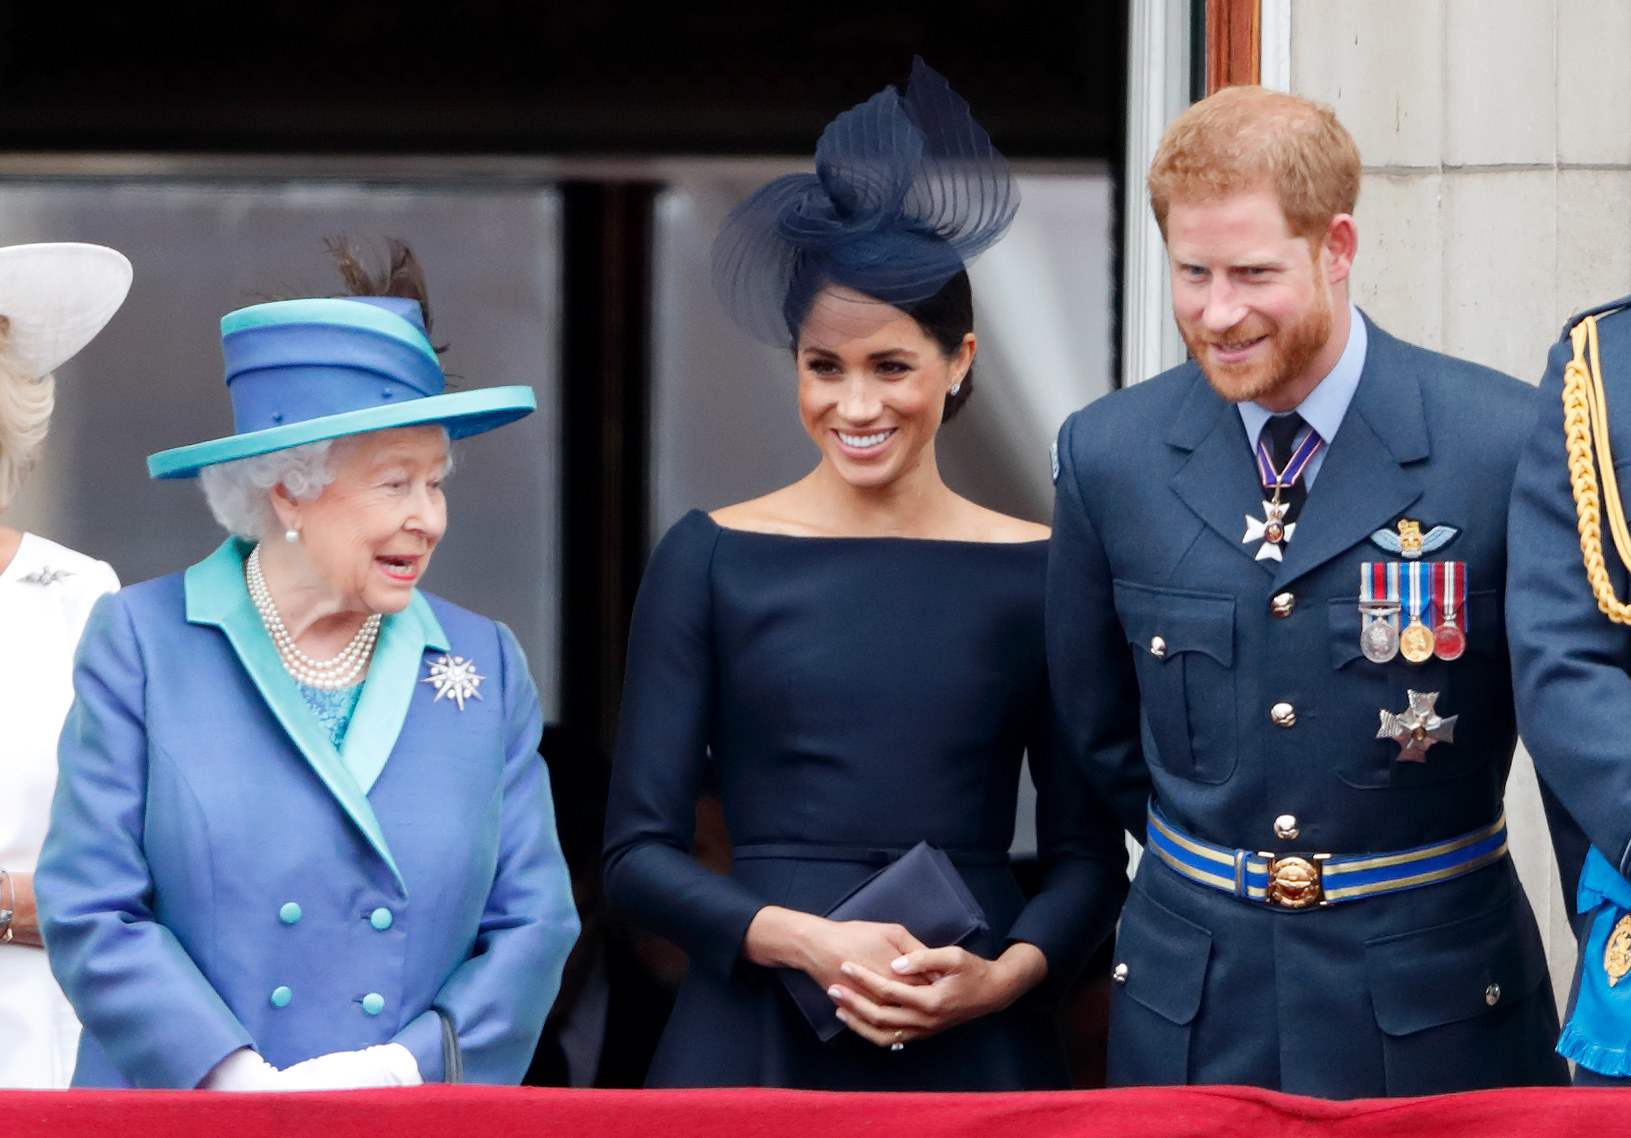 Meghan and Harry stand next to the Queen